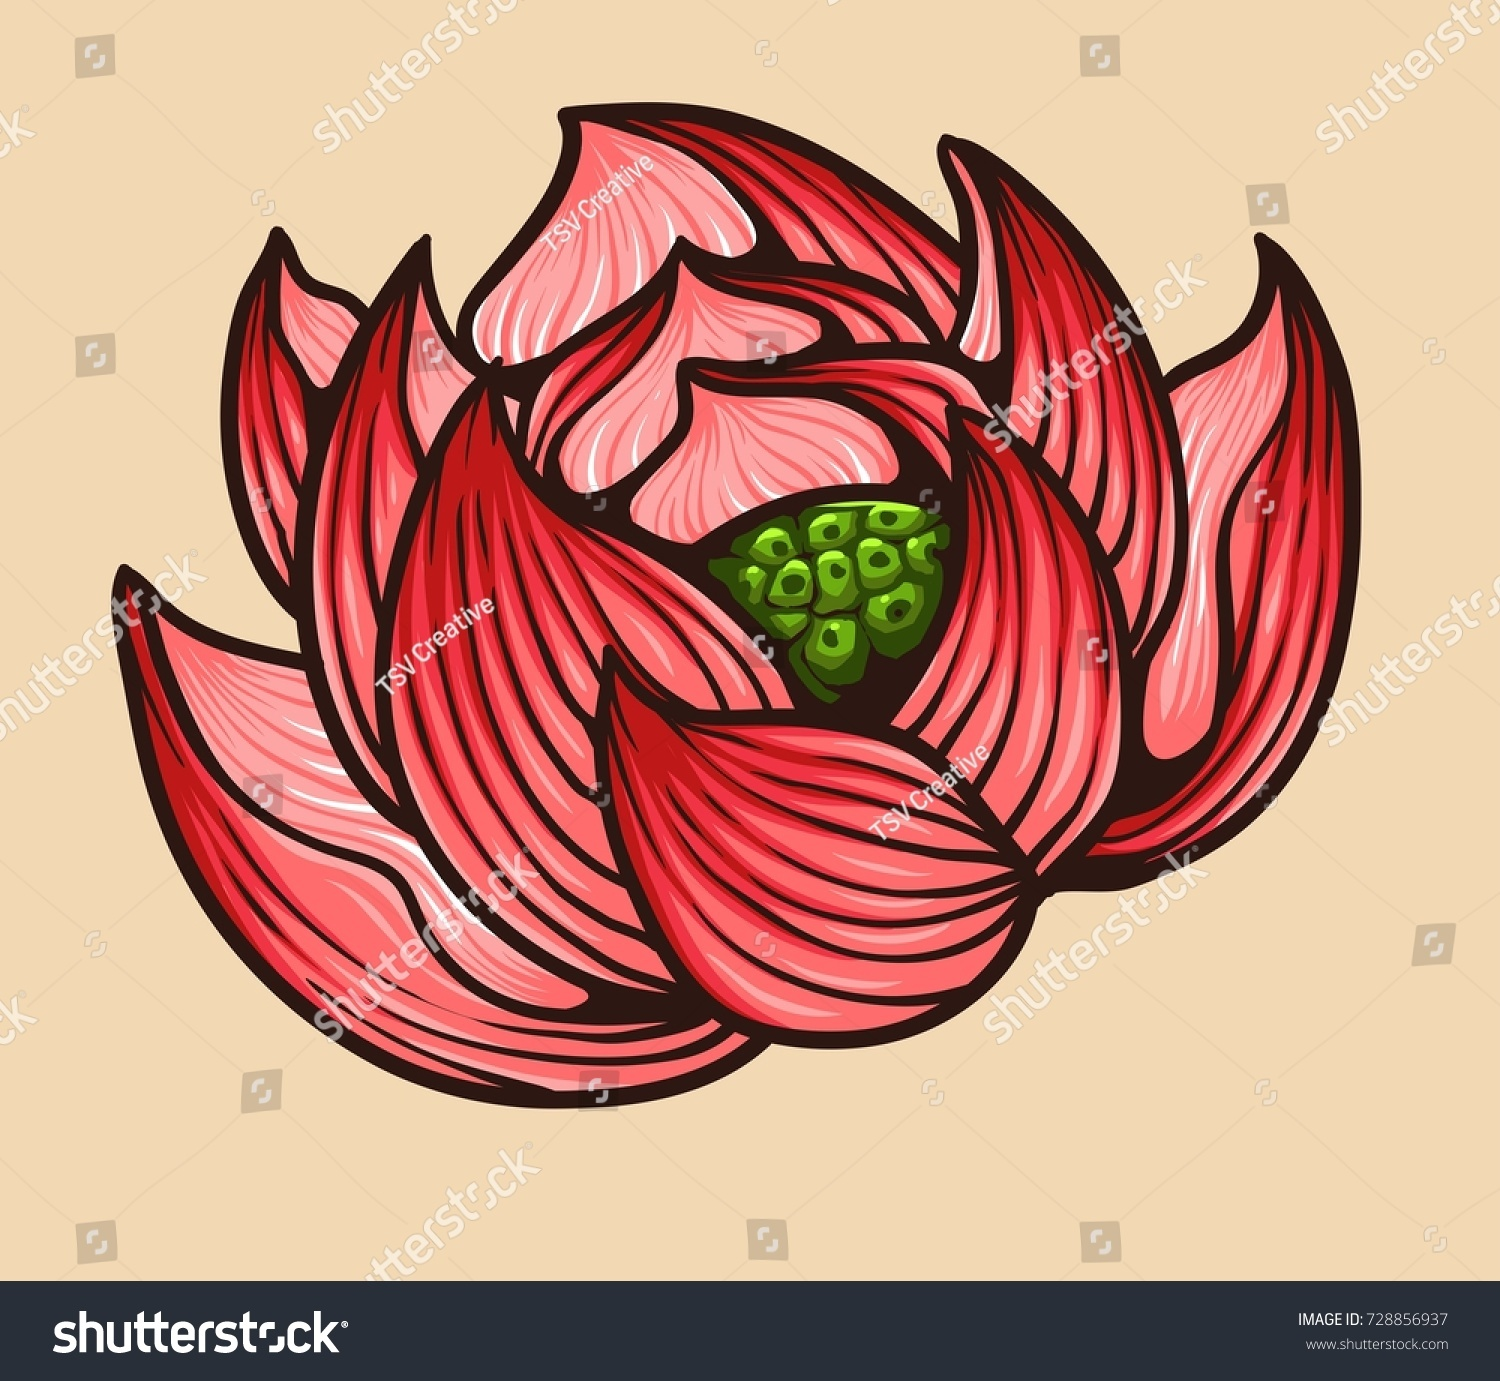 Vector illustration japanese lotus flower tattoo stock vector vector illustration of japanese lotus flower tattoo style drawing izmirmasajfo